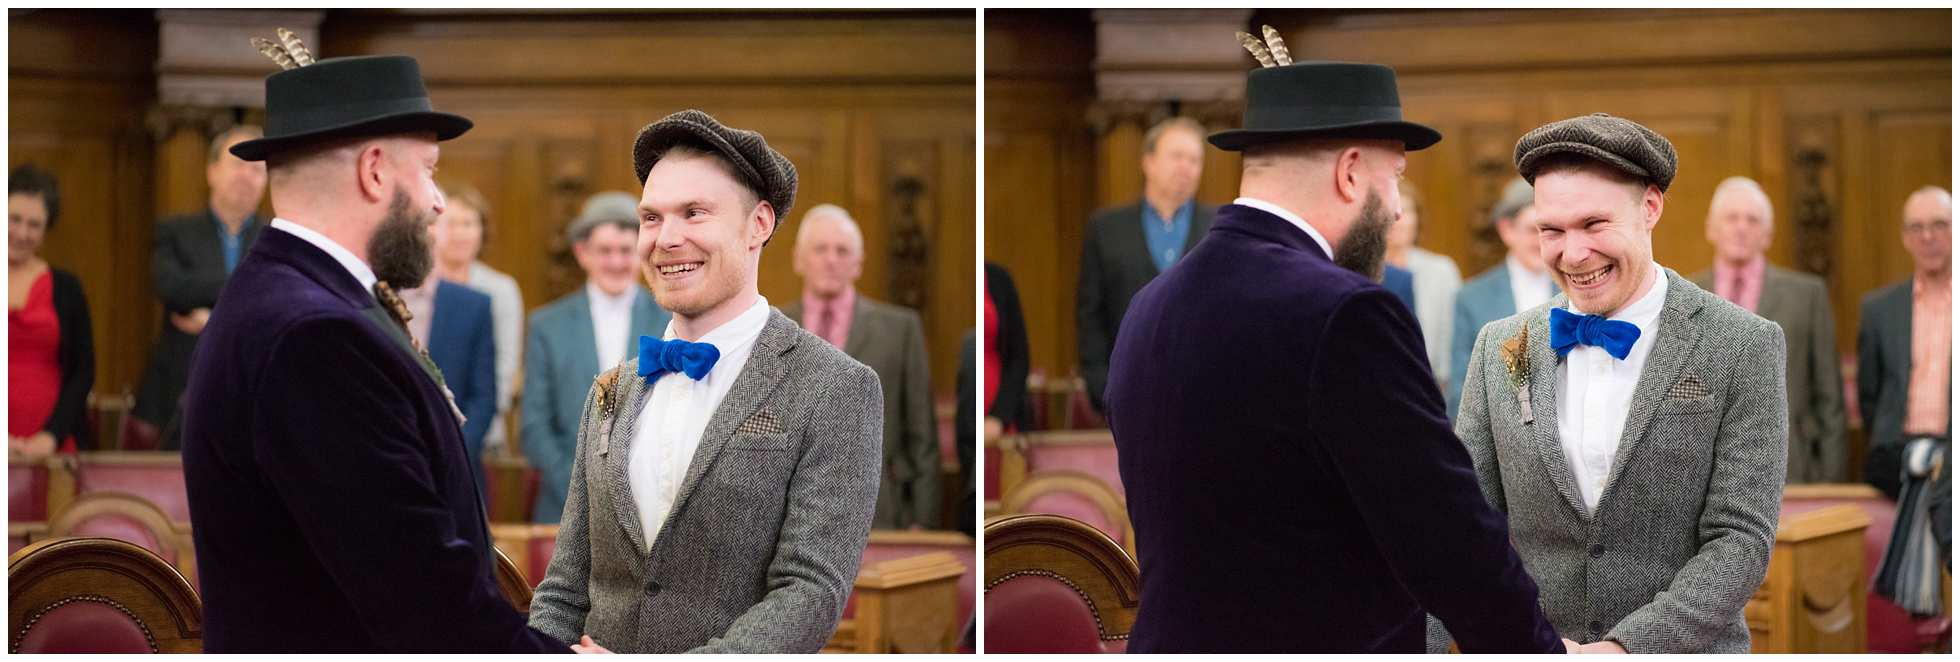 Laugher and giggles at this awesome gay wedding